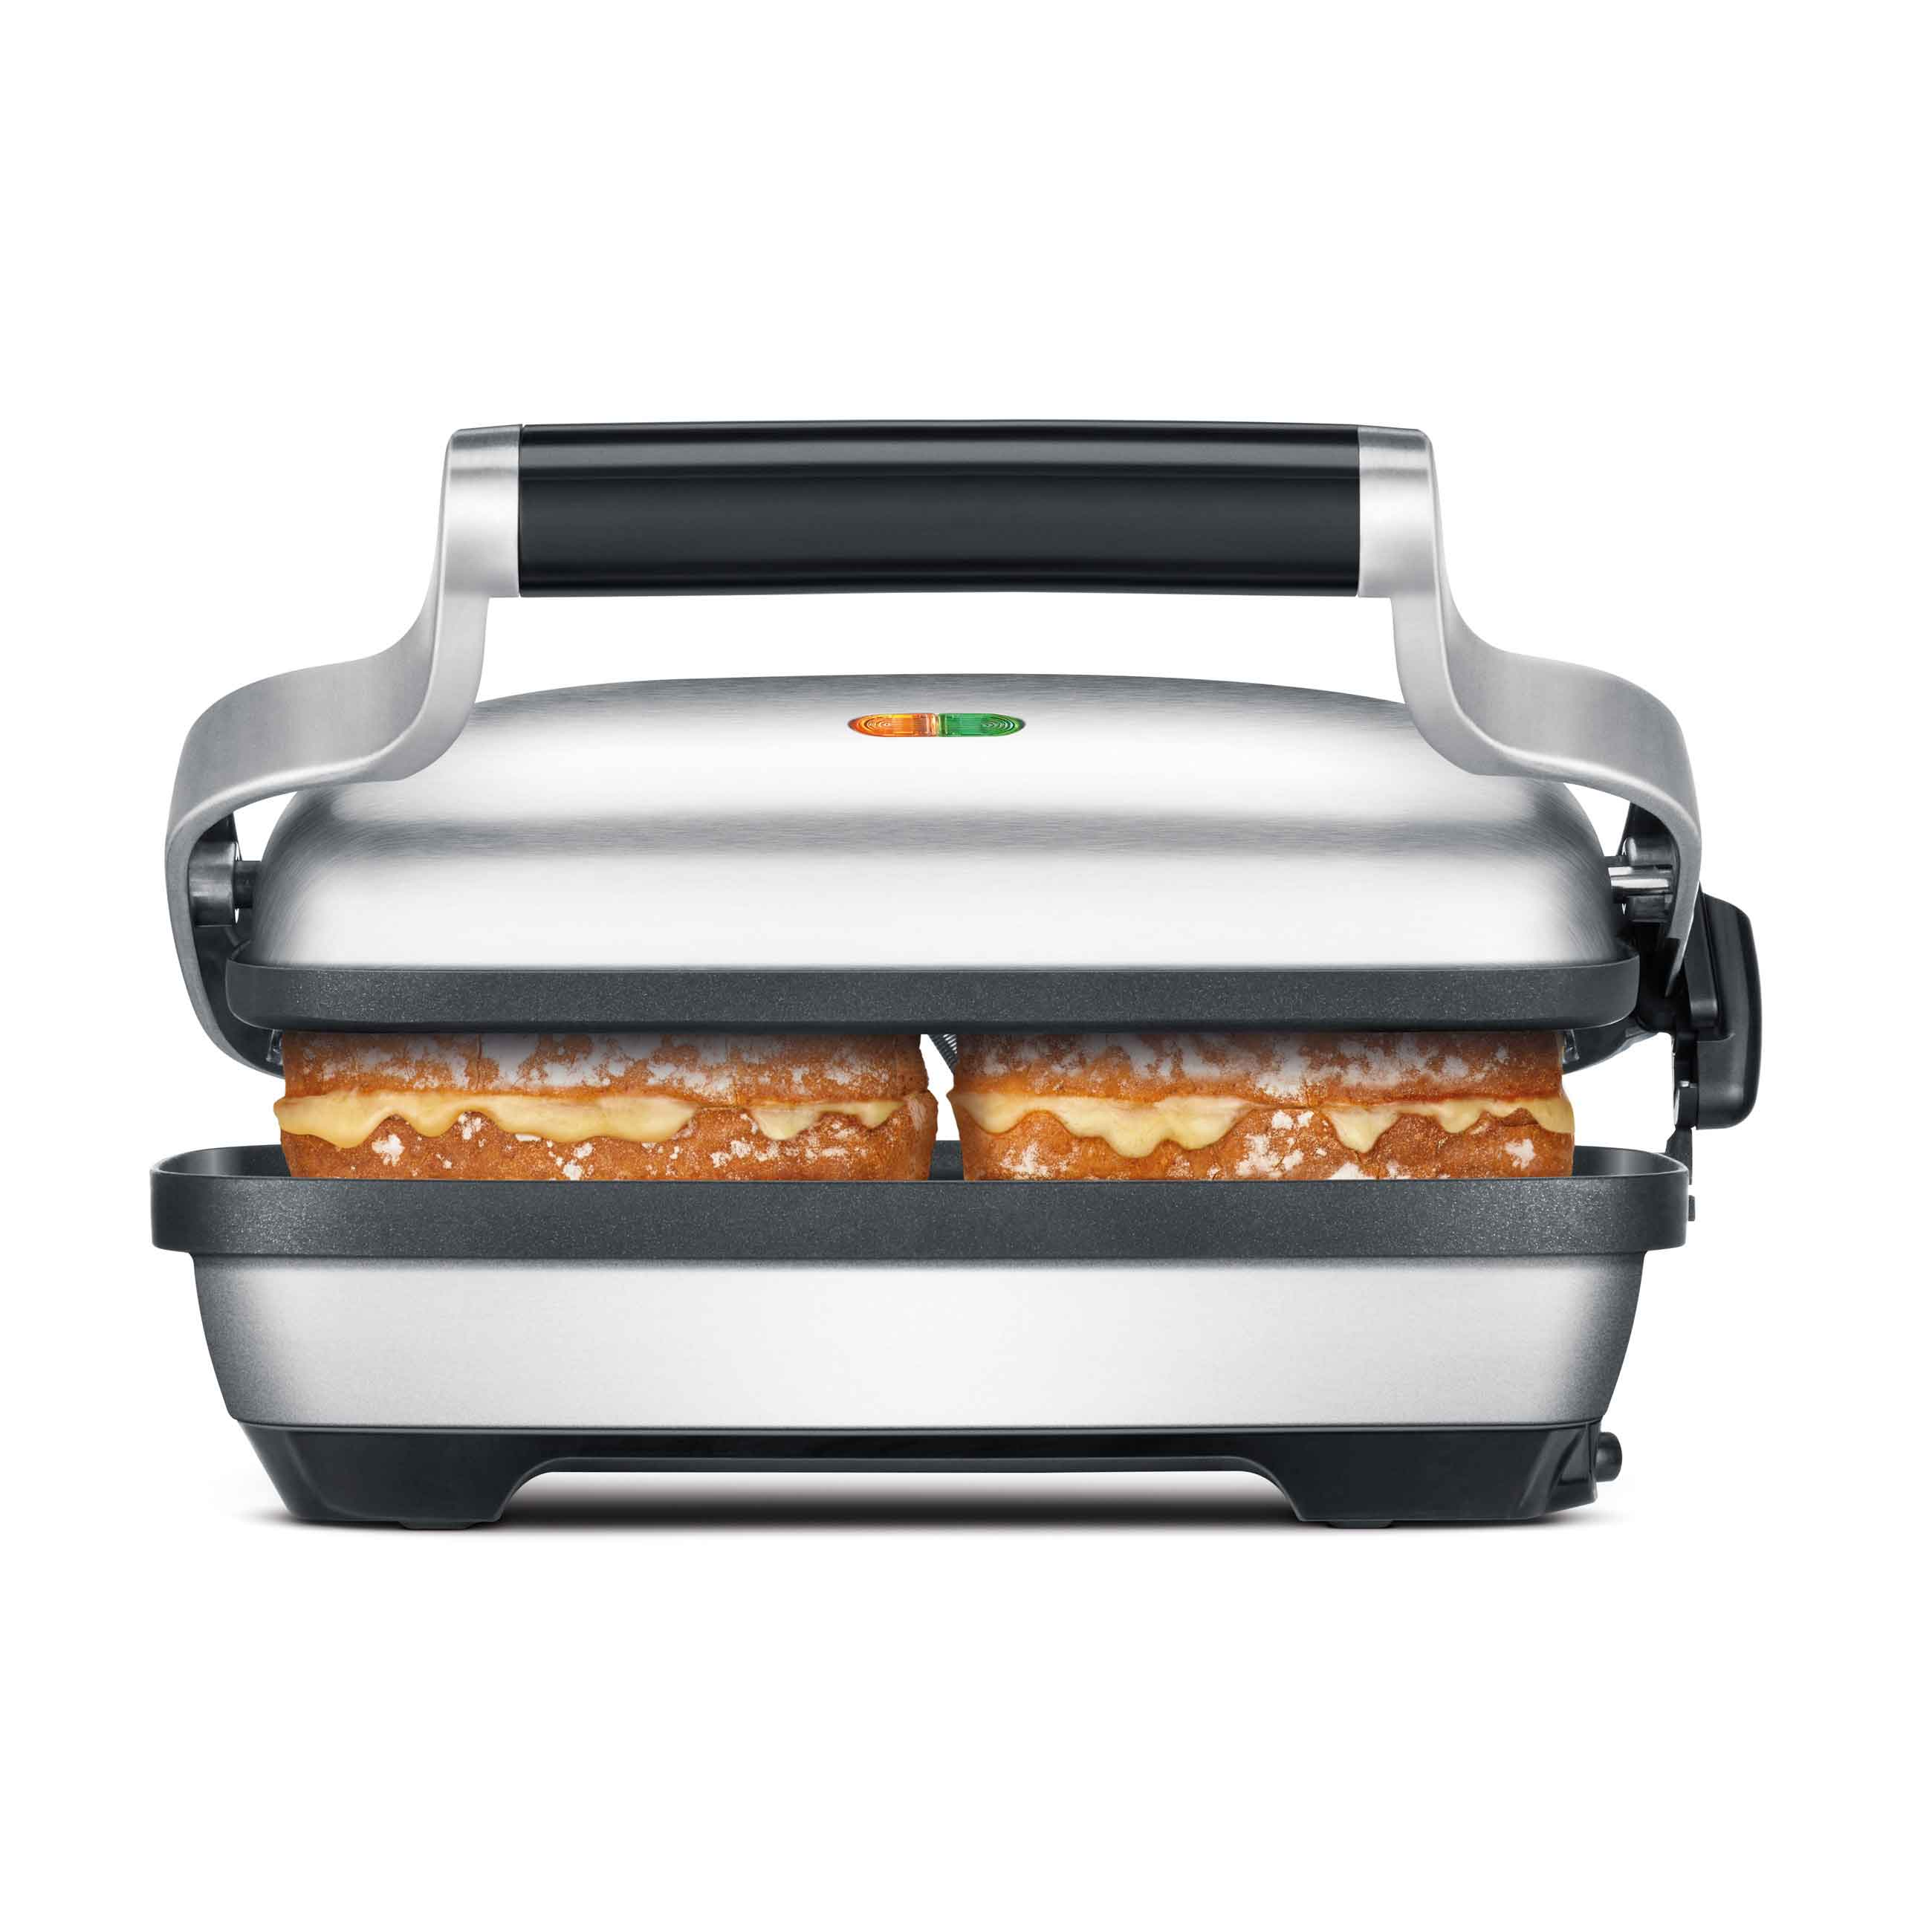 the Perfect Press™ Grills & Sandwich Makers in Brushed Stainless Steel adjustable height control